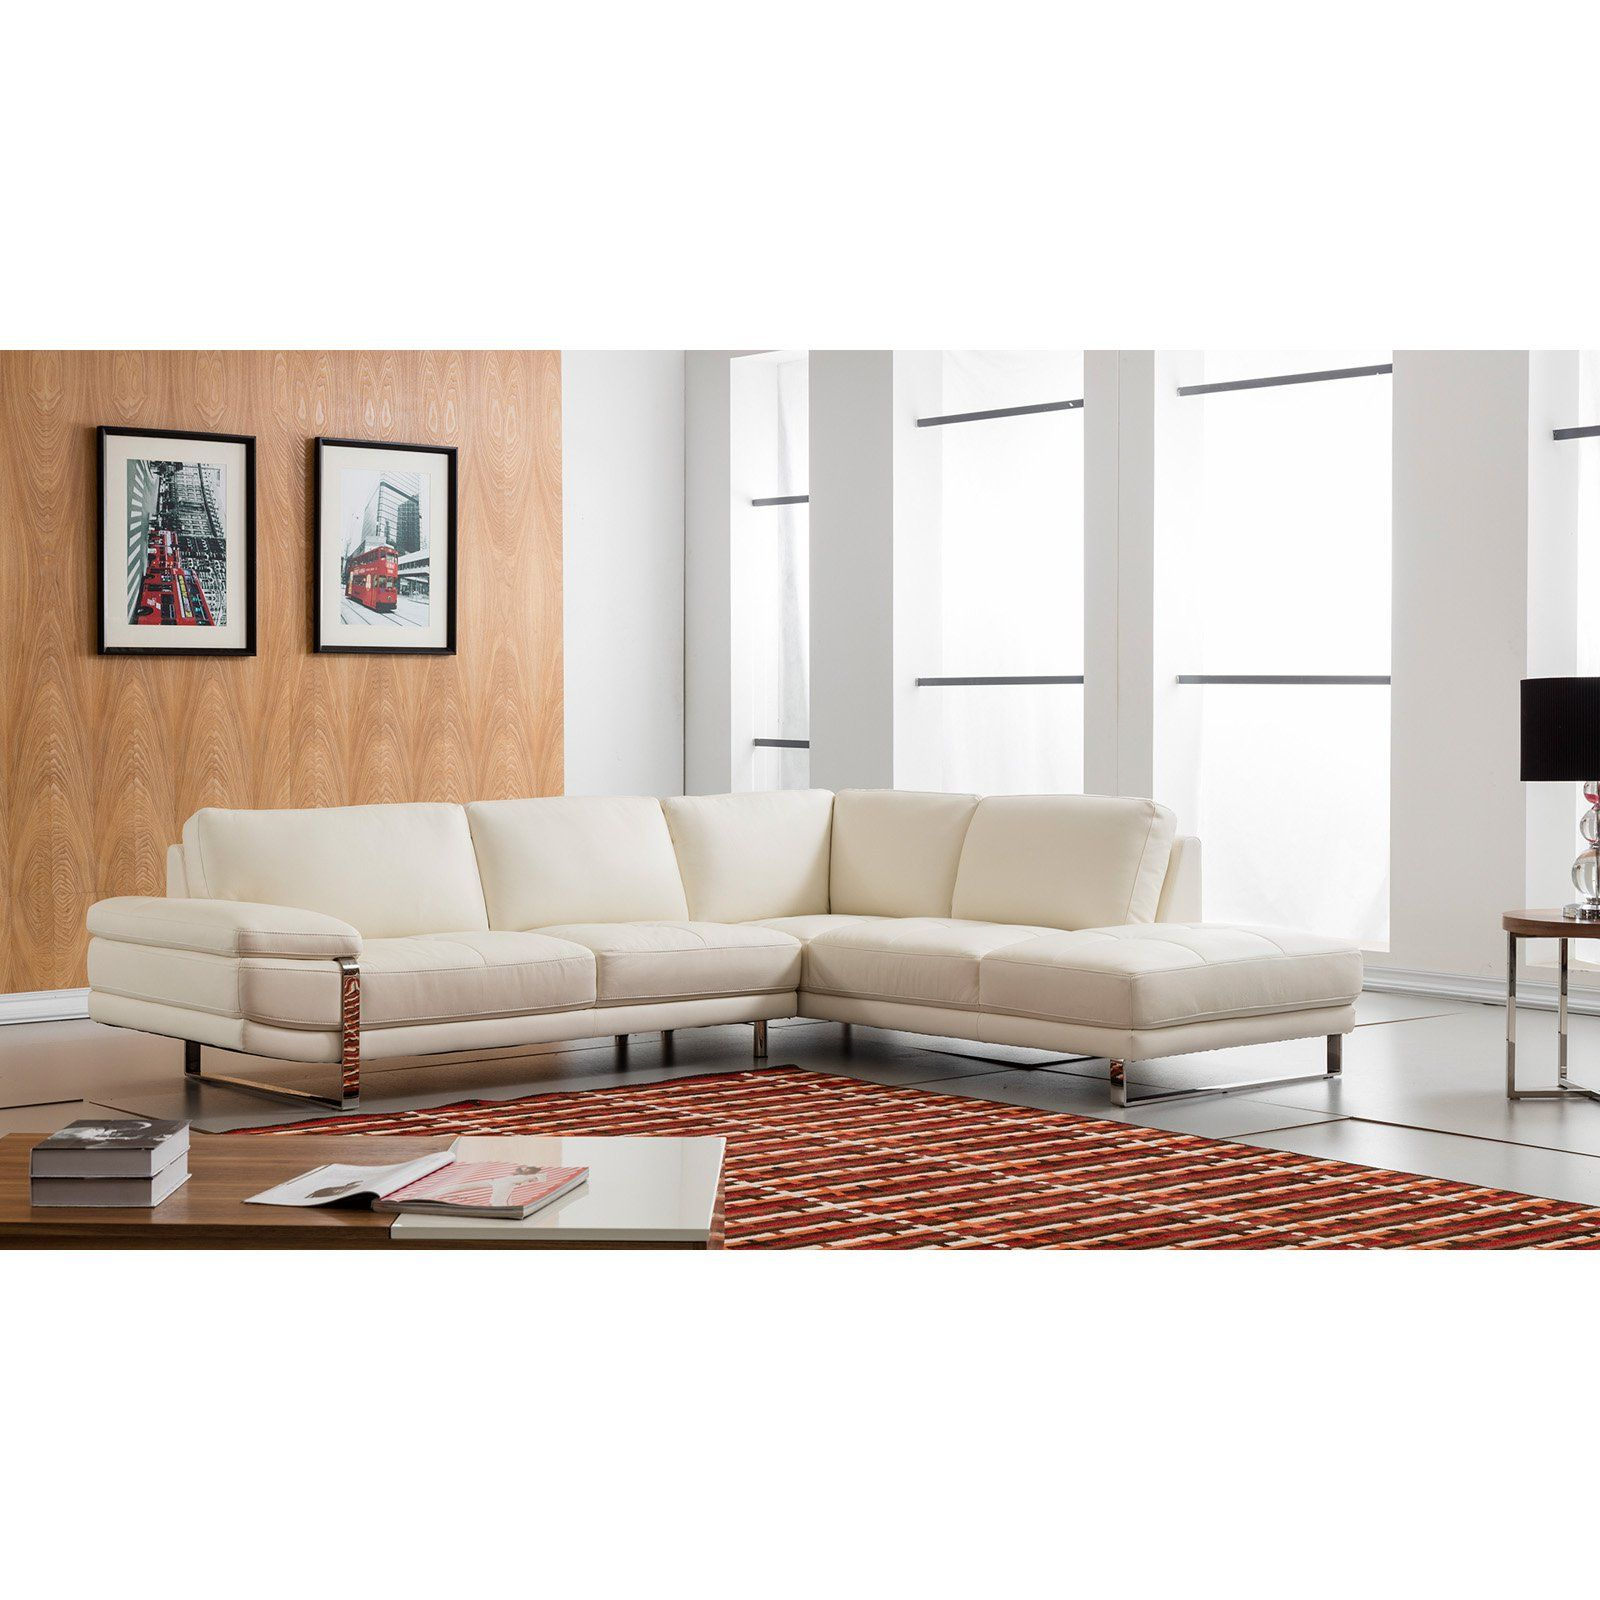 american eagle furniture chelsea white italian leather sectional rh pinterest at